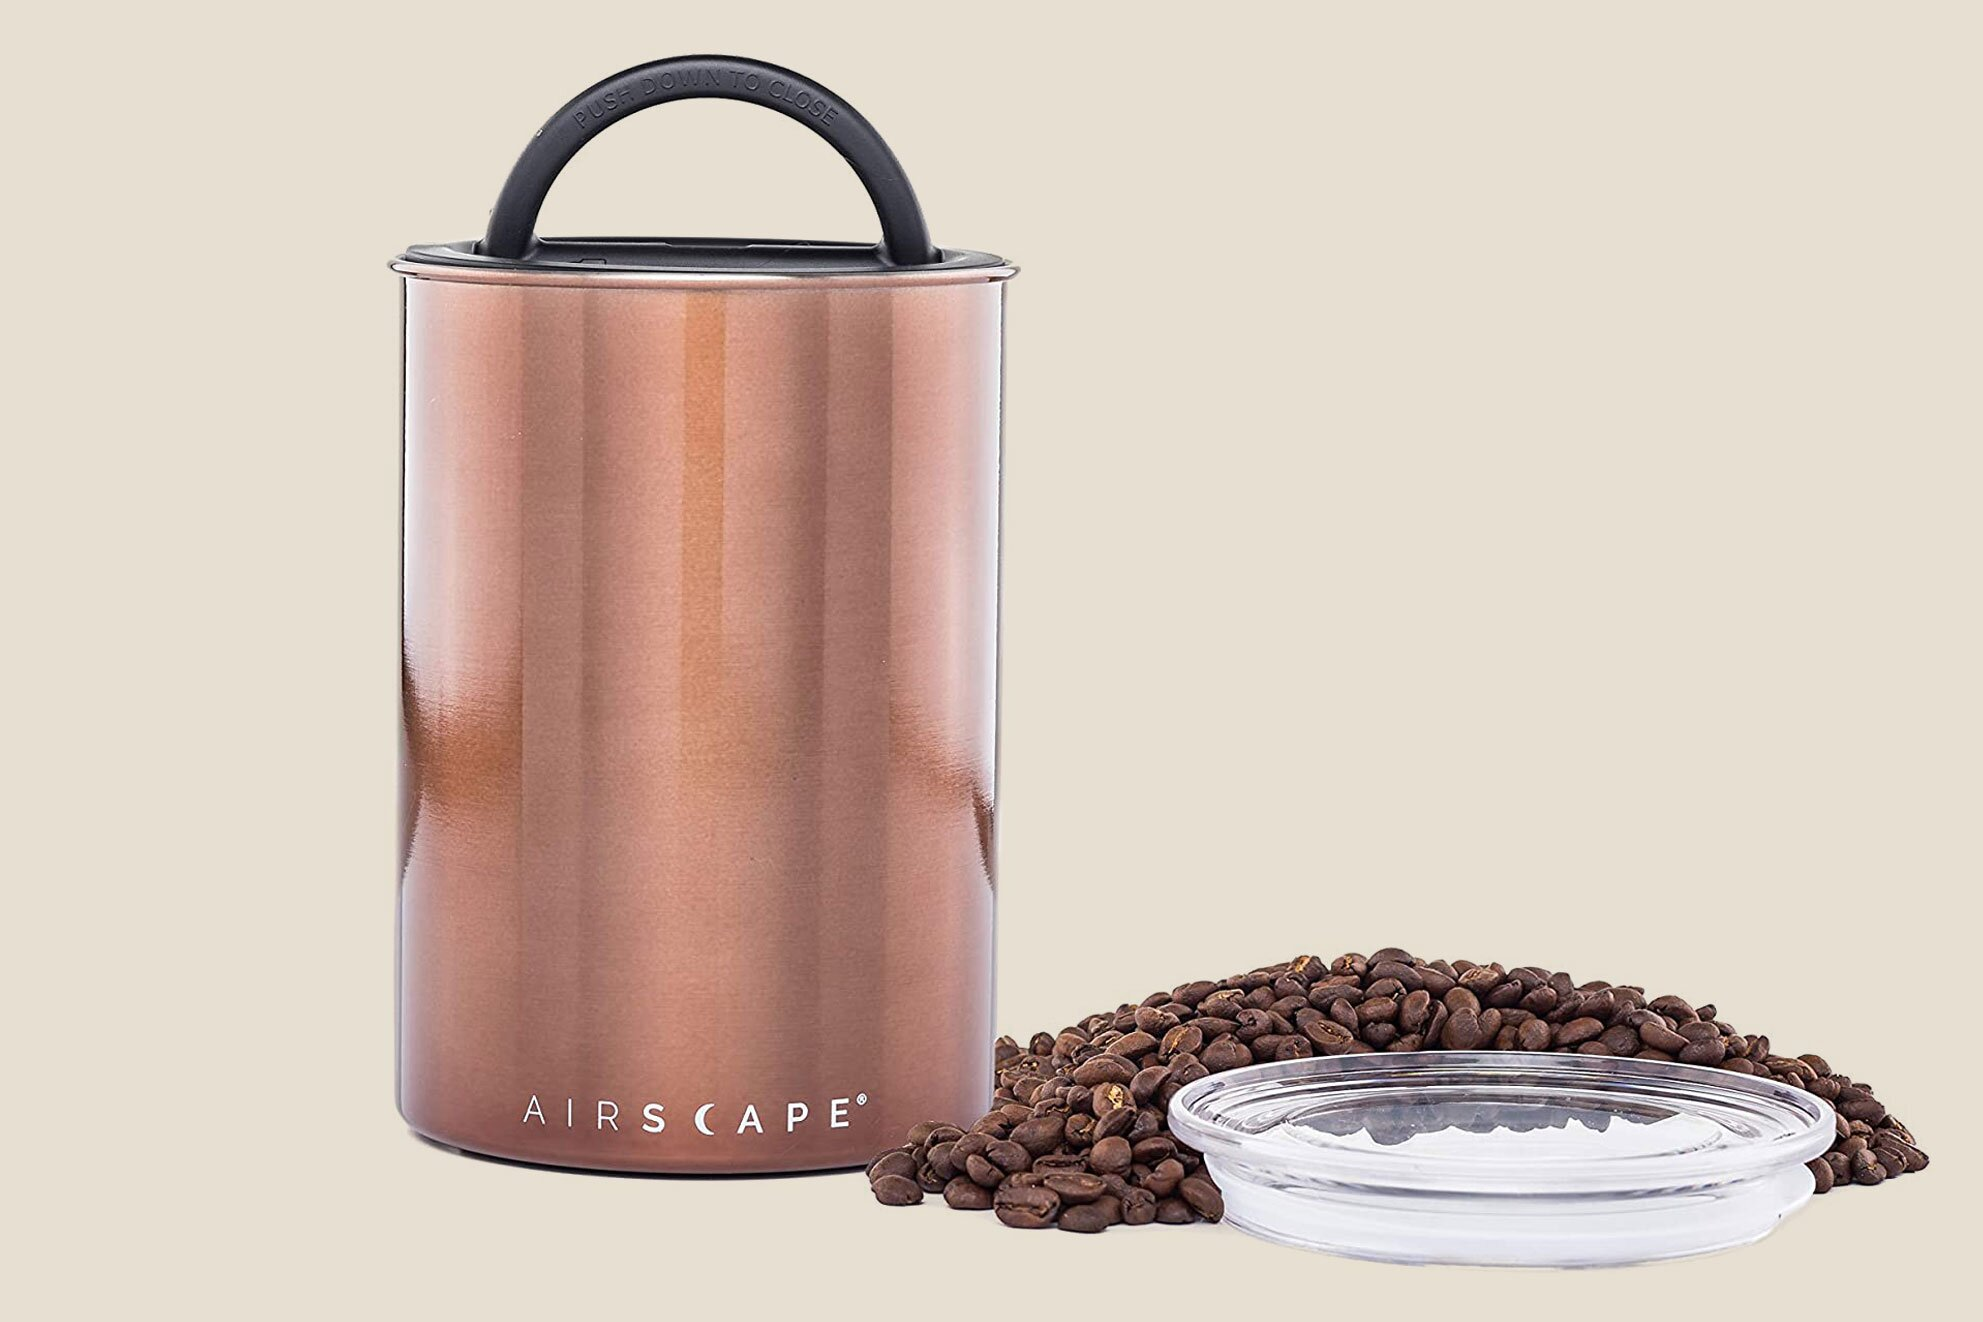 Airscape Coffee and Food Storage Container